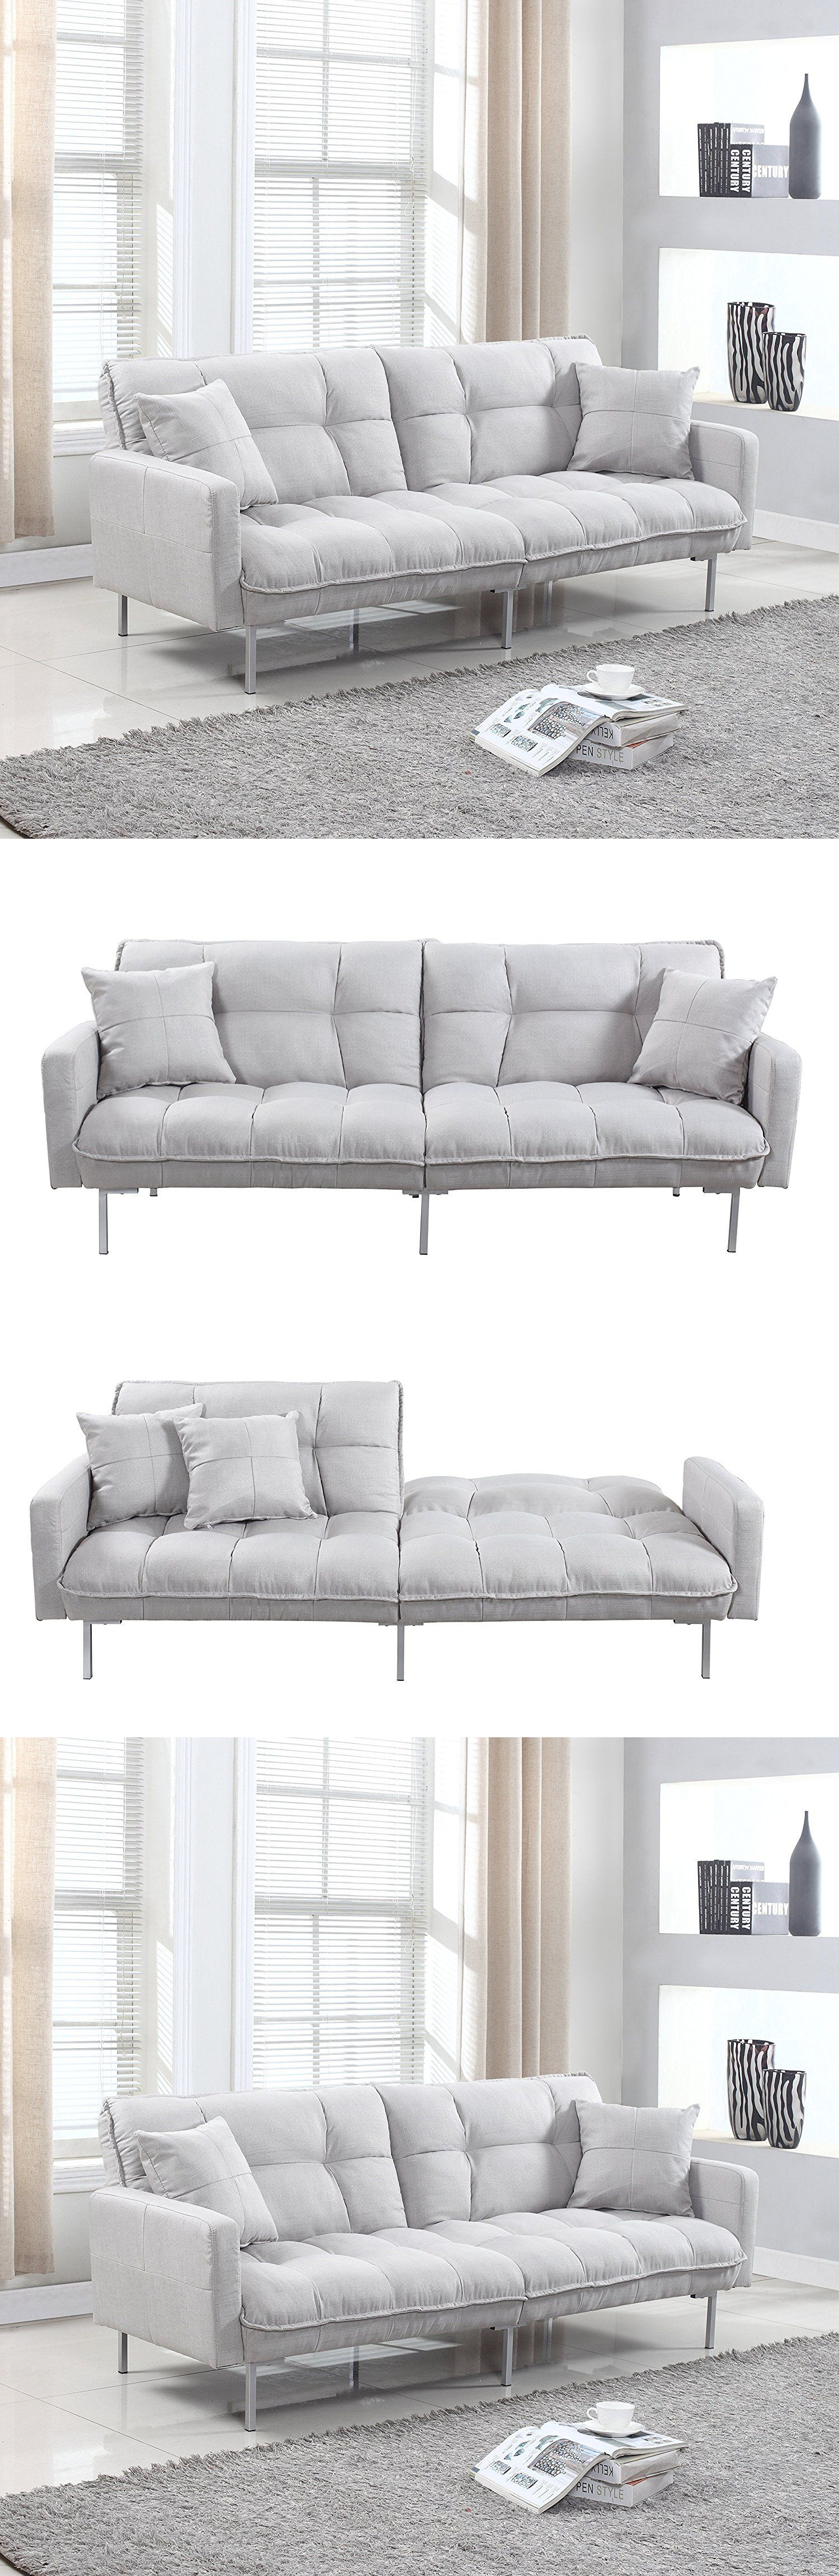 furniture Sofa Couch Bed Sleeper Convertible Living Room